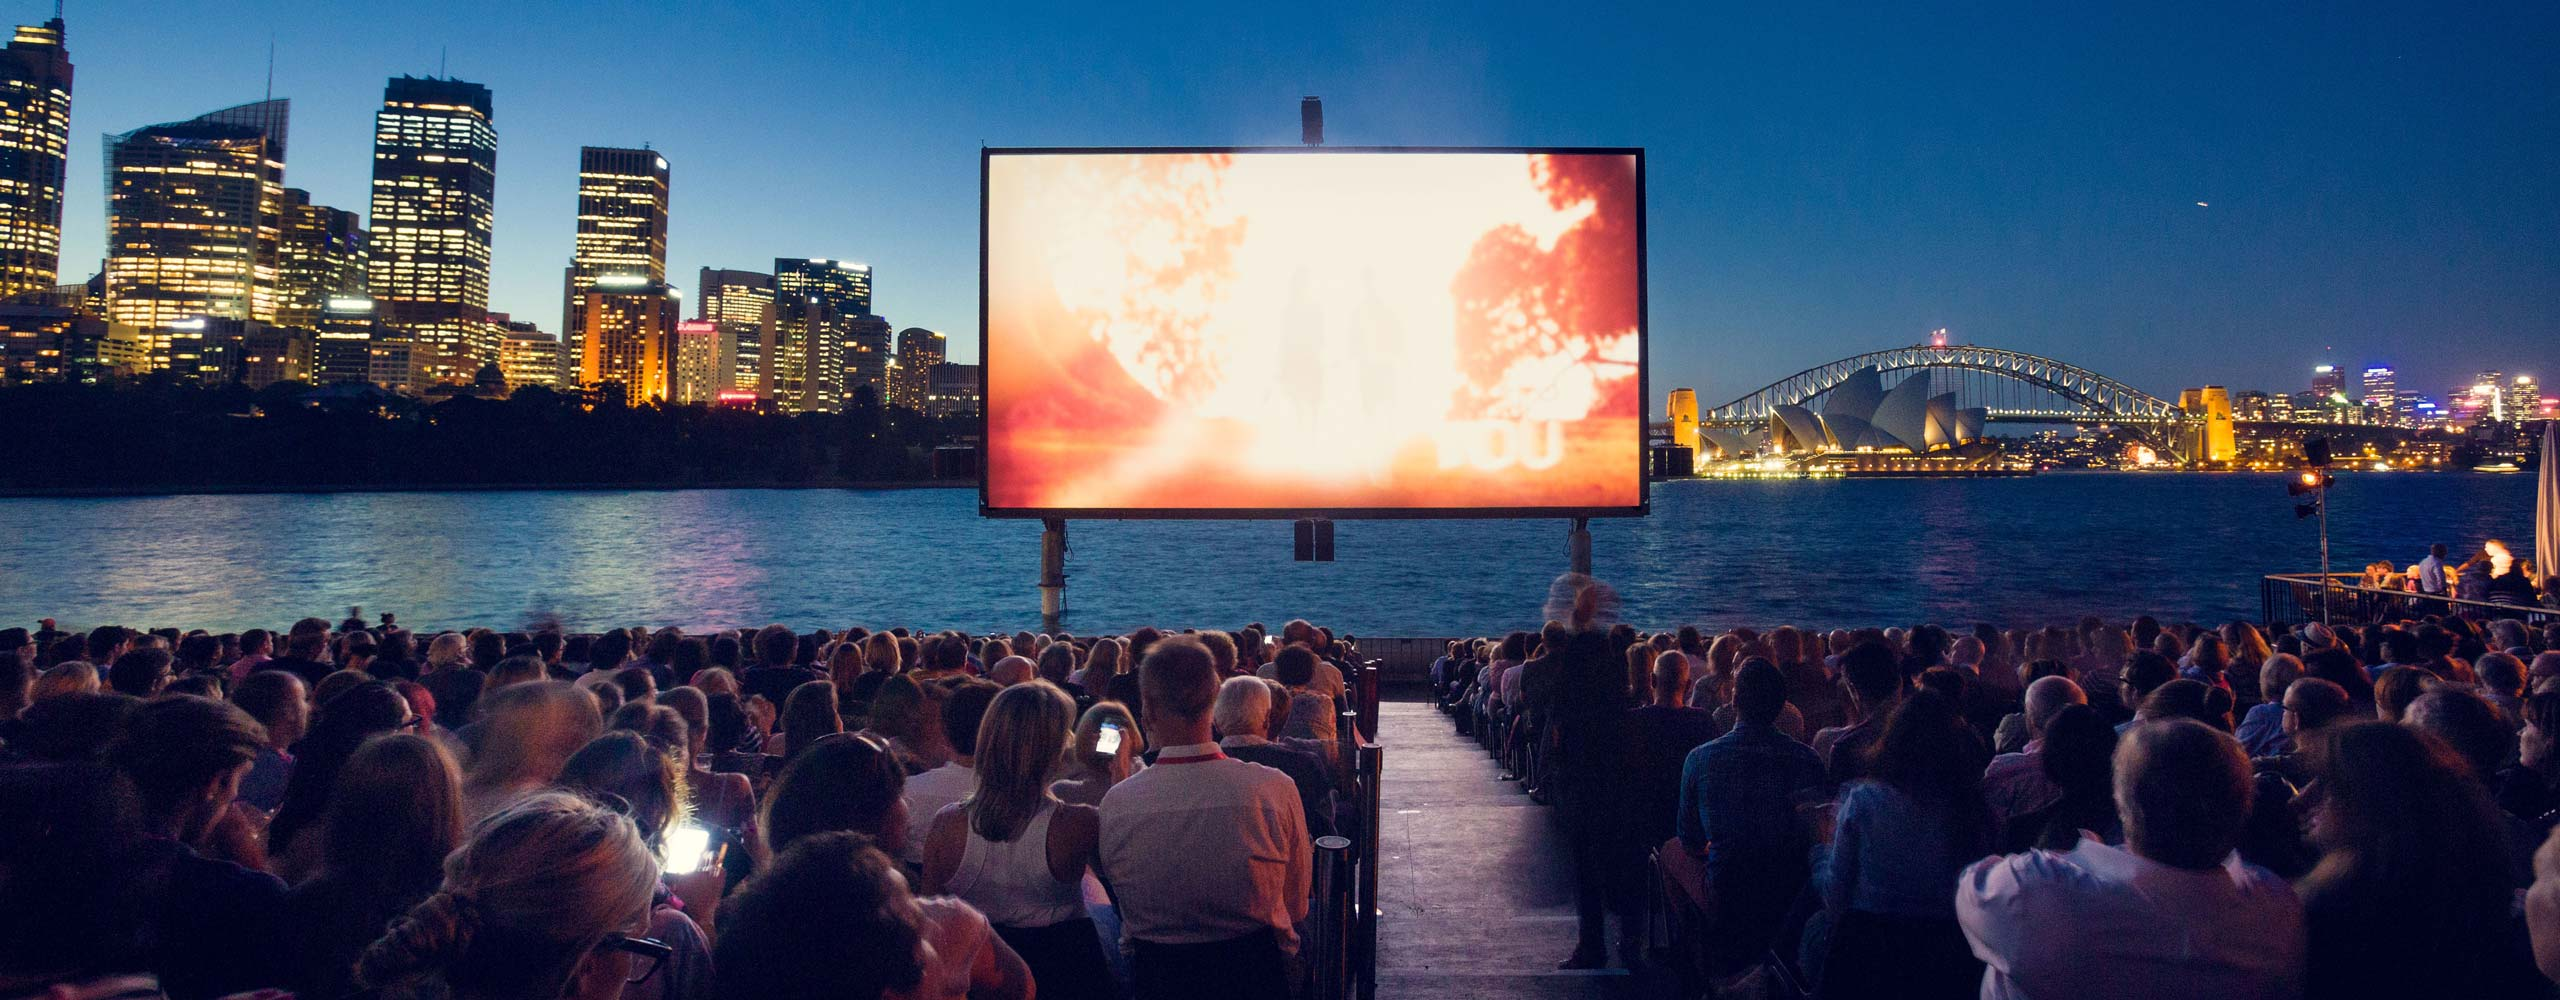 St George Openair Cinema Returns for Summer 2016